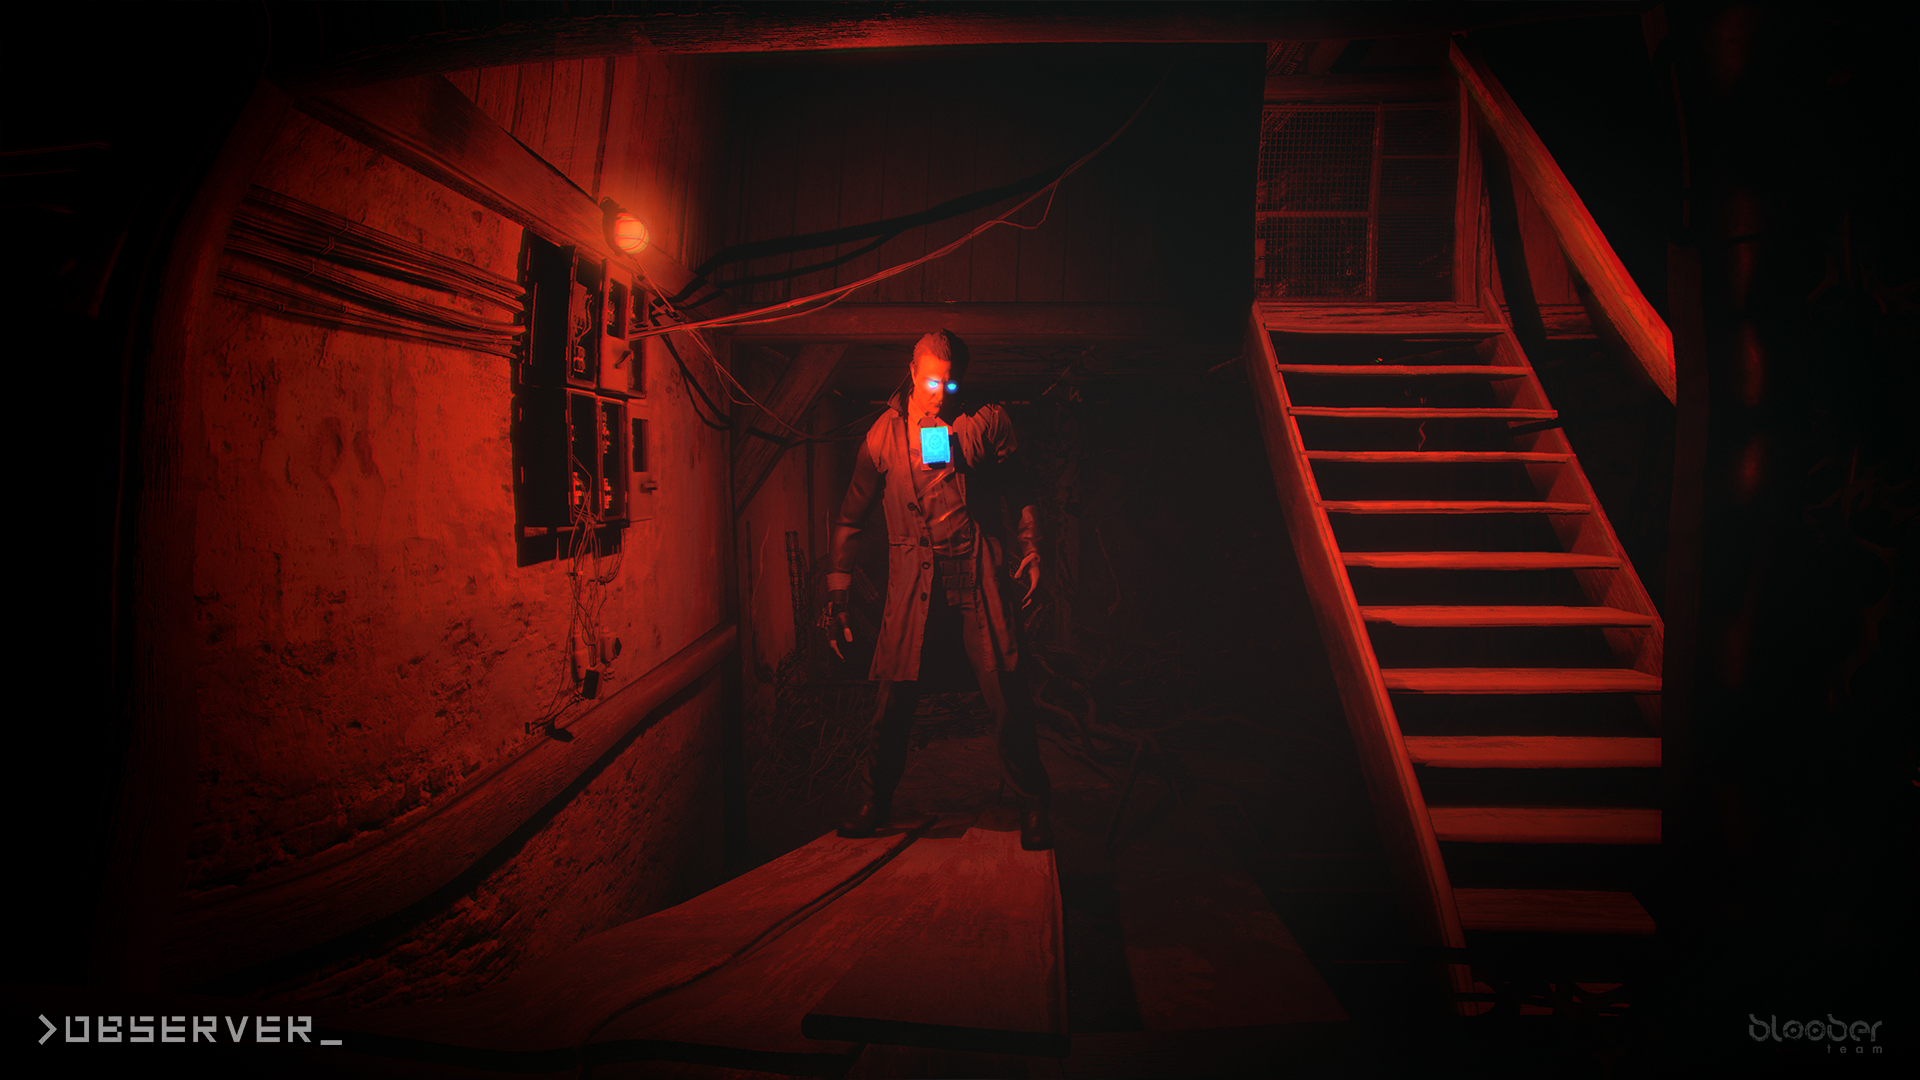 Observer_Red.png